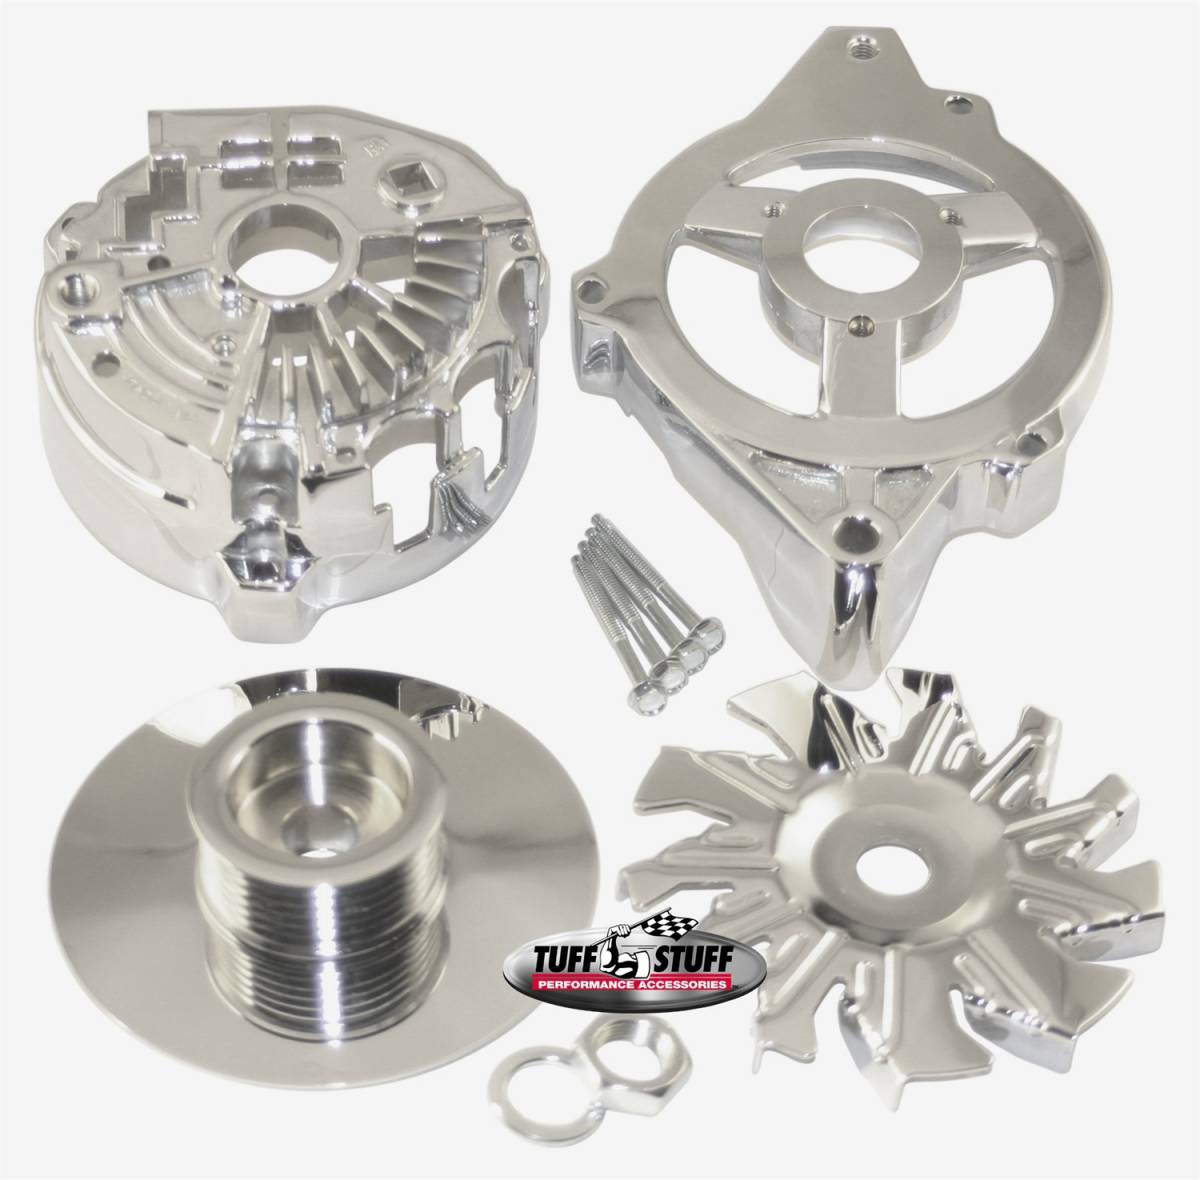 Tuff Stuff Performance - Alternator Case Kit Fits GM CS130 w/6 Groove Pulley And Tuff Stuff Alternator PN[7935] Incl. Front And Rear Housings/Fan/Pulley/Nut/Lockwashers/Thru Bolts Chrome Plated 7500H